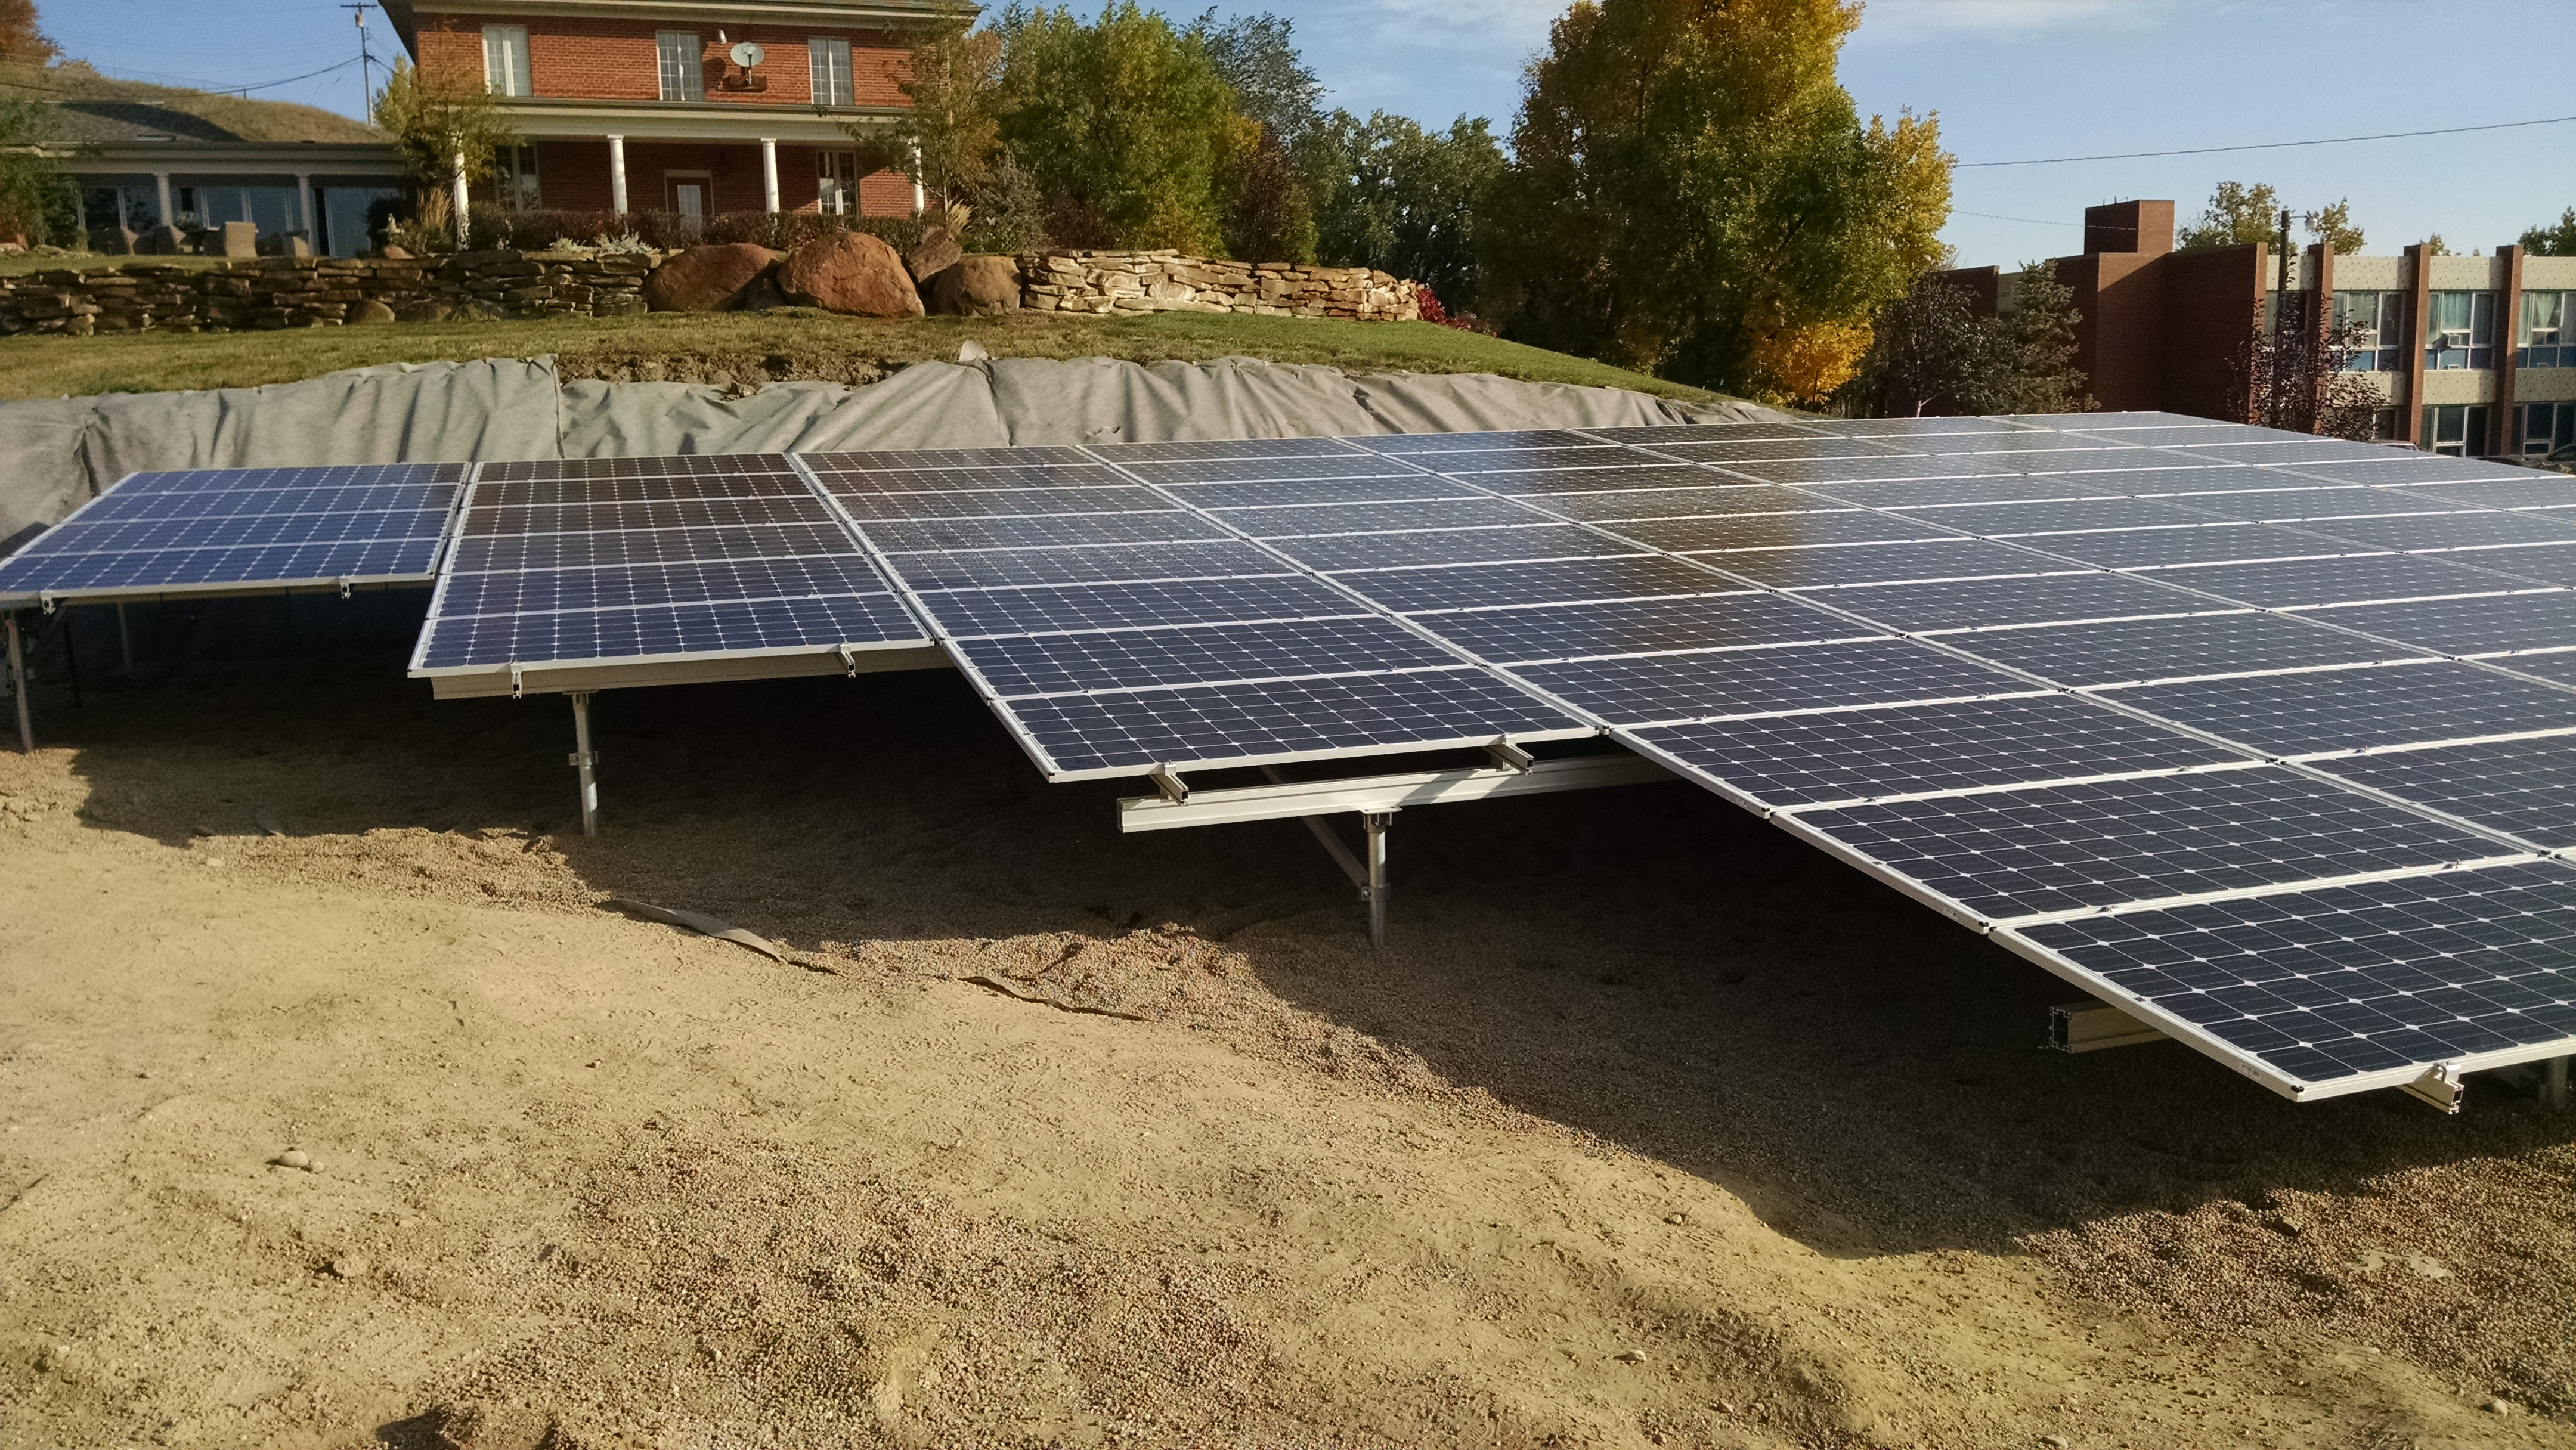 Ground Mount Solar Electric Modules Havre Montana